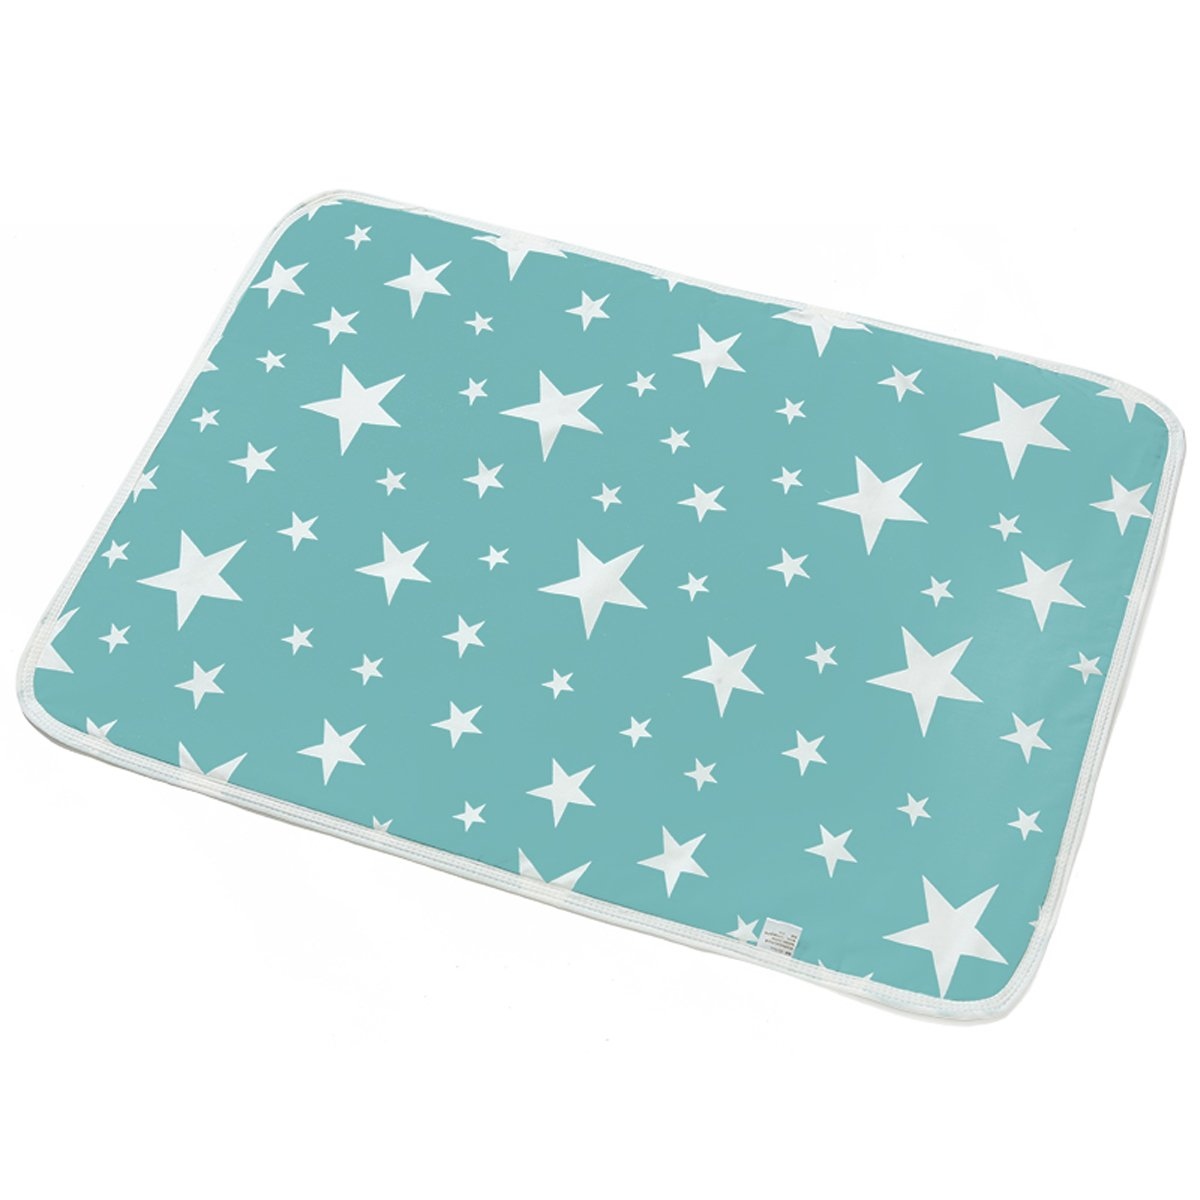 Changing Pad Large Size Waterproof Cotton Changing Mat with Wet Bag for Kids by LISICK (23.6''×29.5'') LK-06